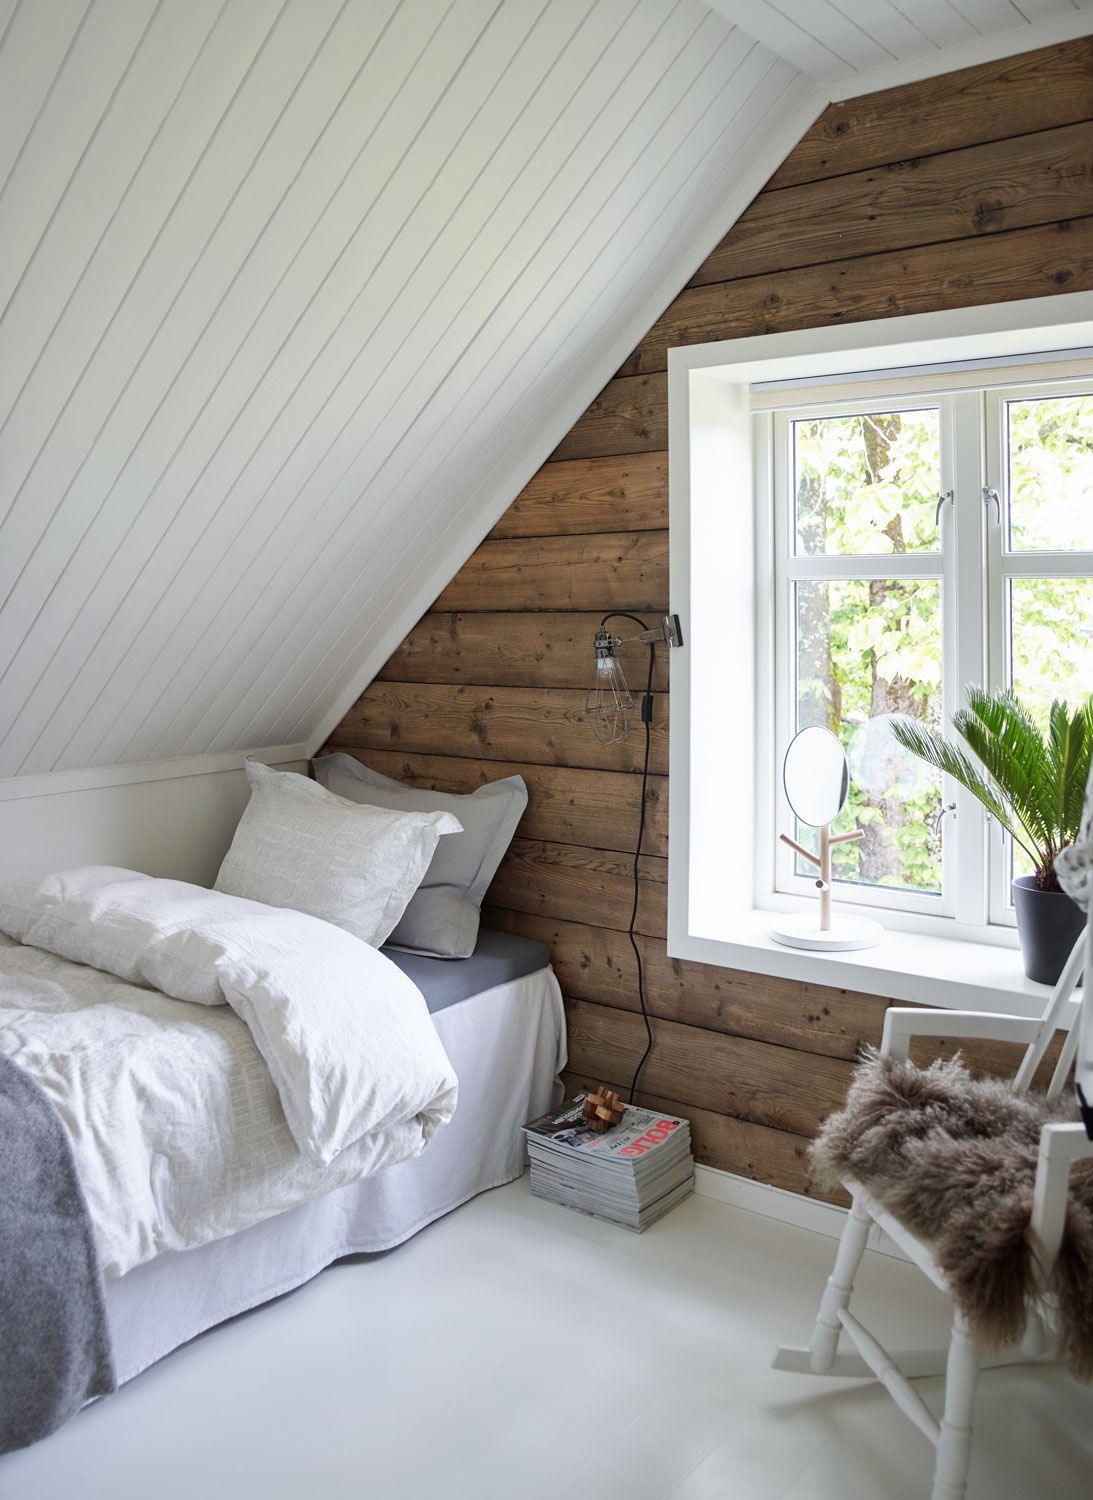 Loft bedroom storage ideas  About  แบบบาน  Pinterest  Attic bedroom storage Small attic